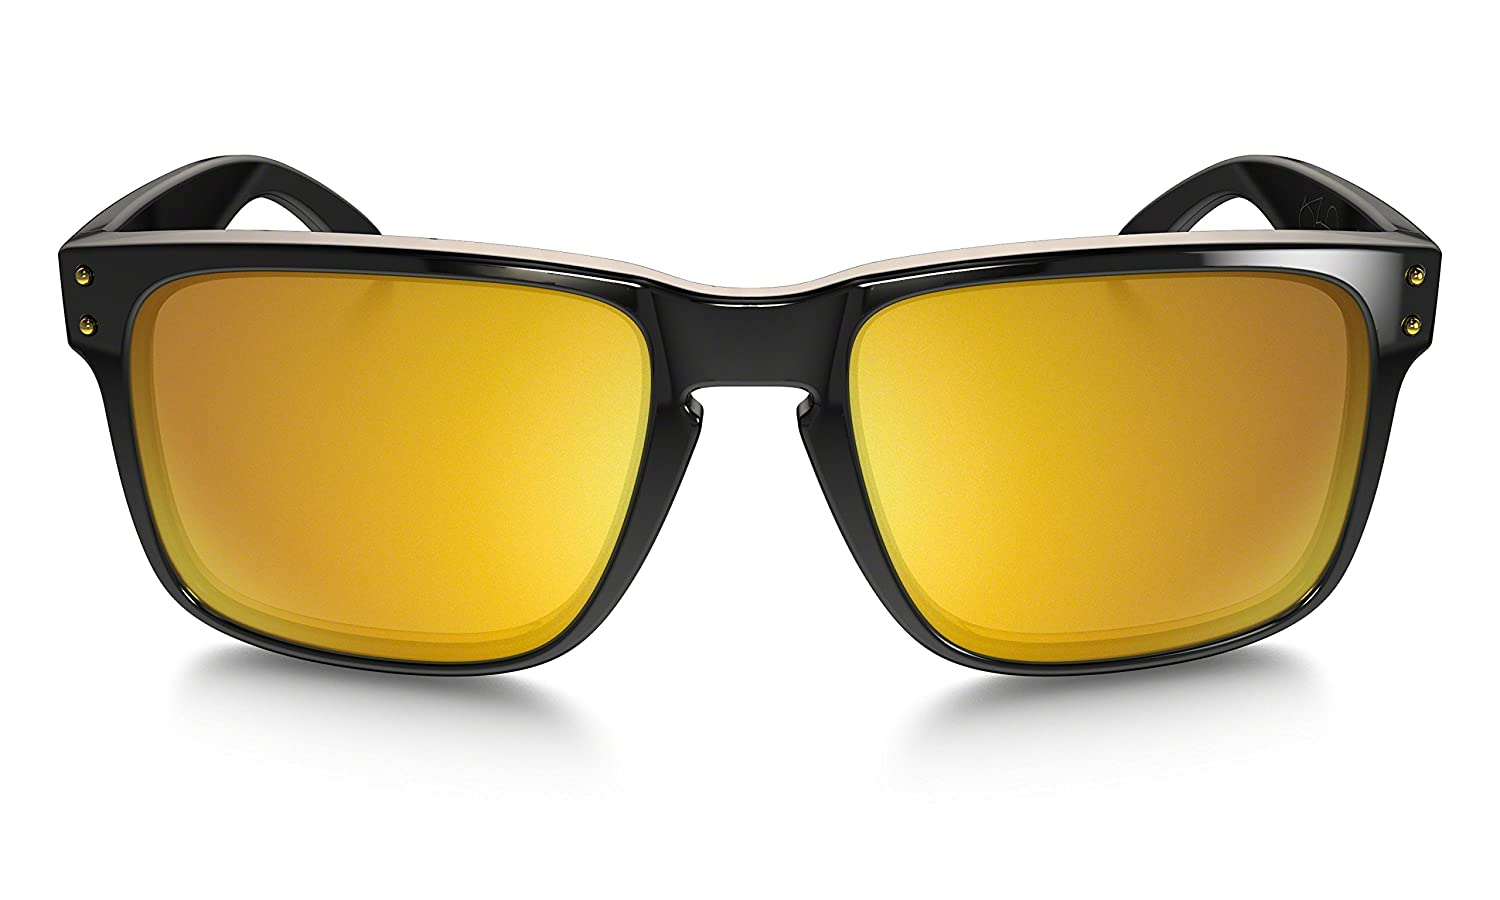 b0faf20dce4f4 Amazon.com  Oakley Holbrook Sunglasses  Clothing